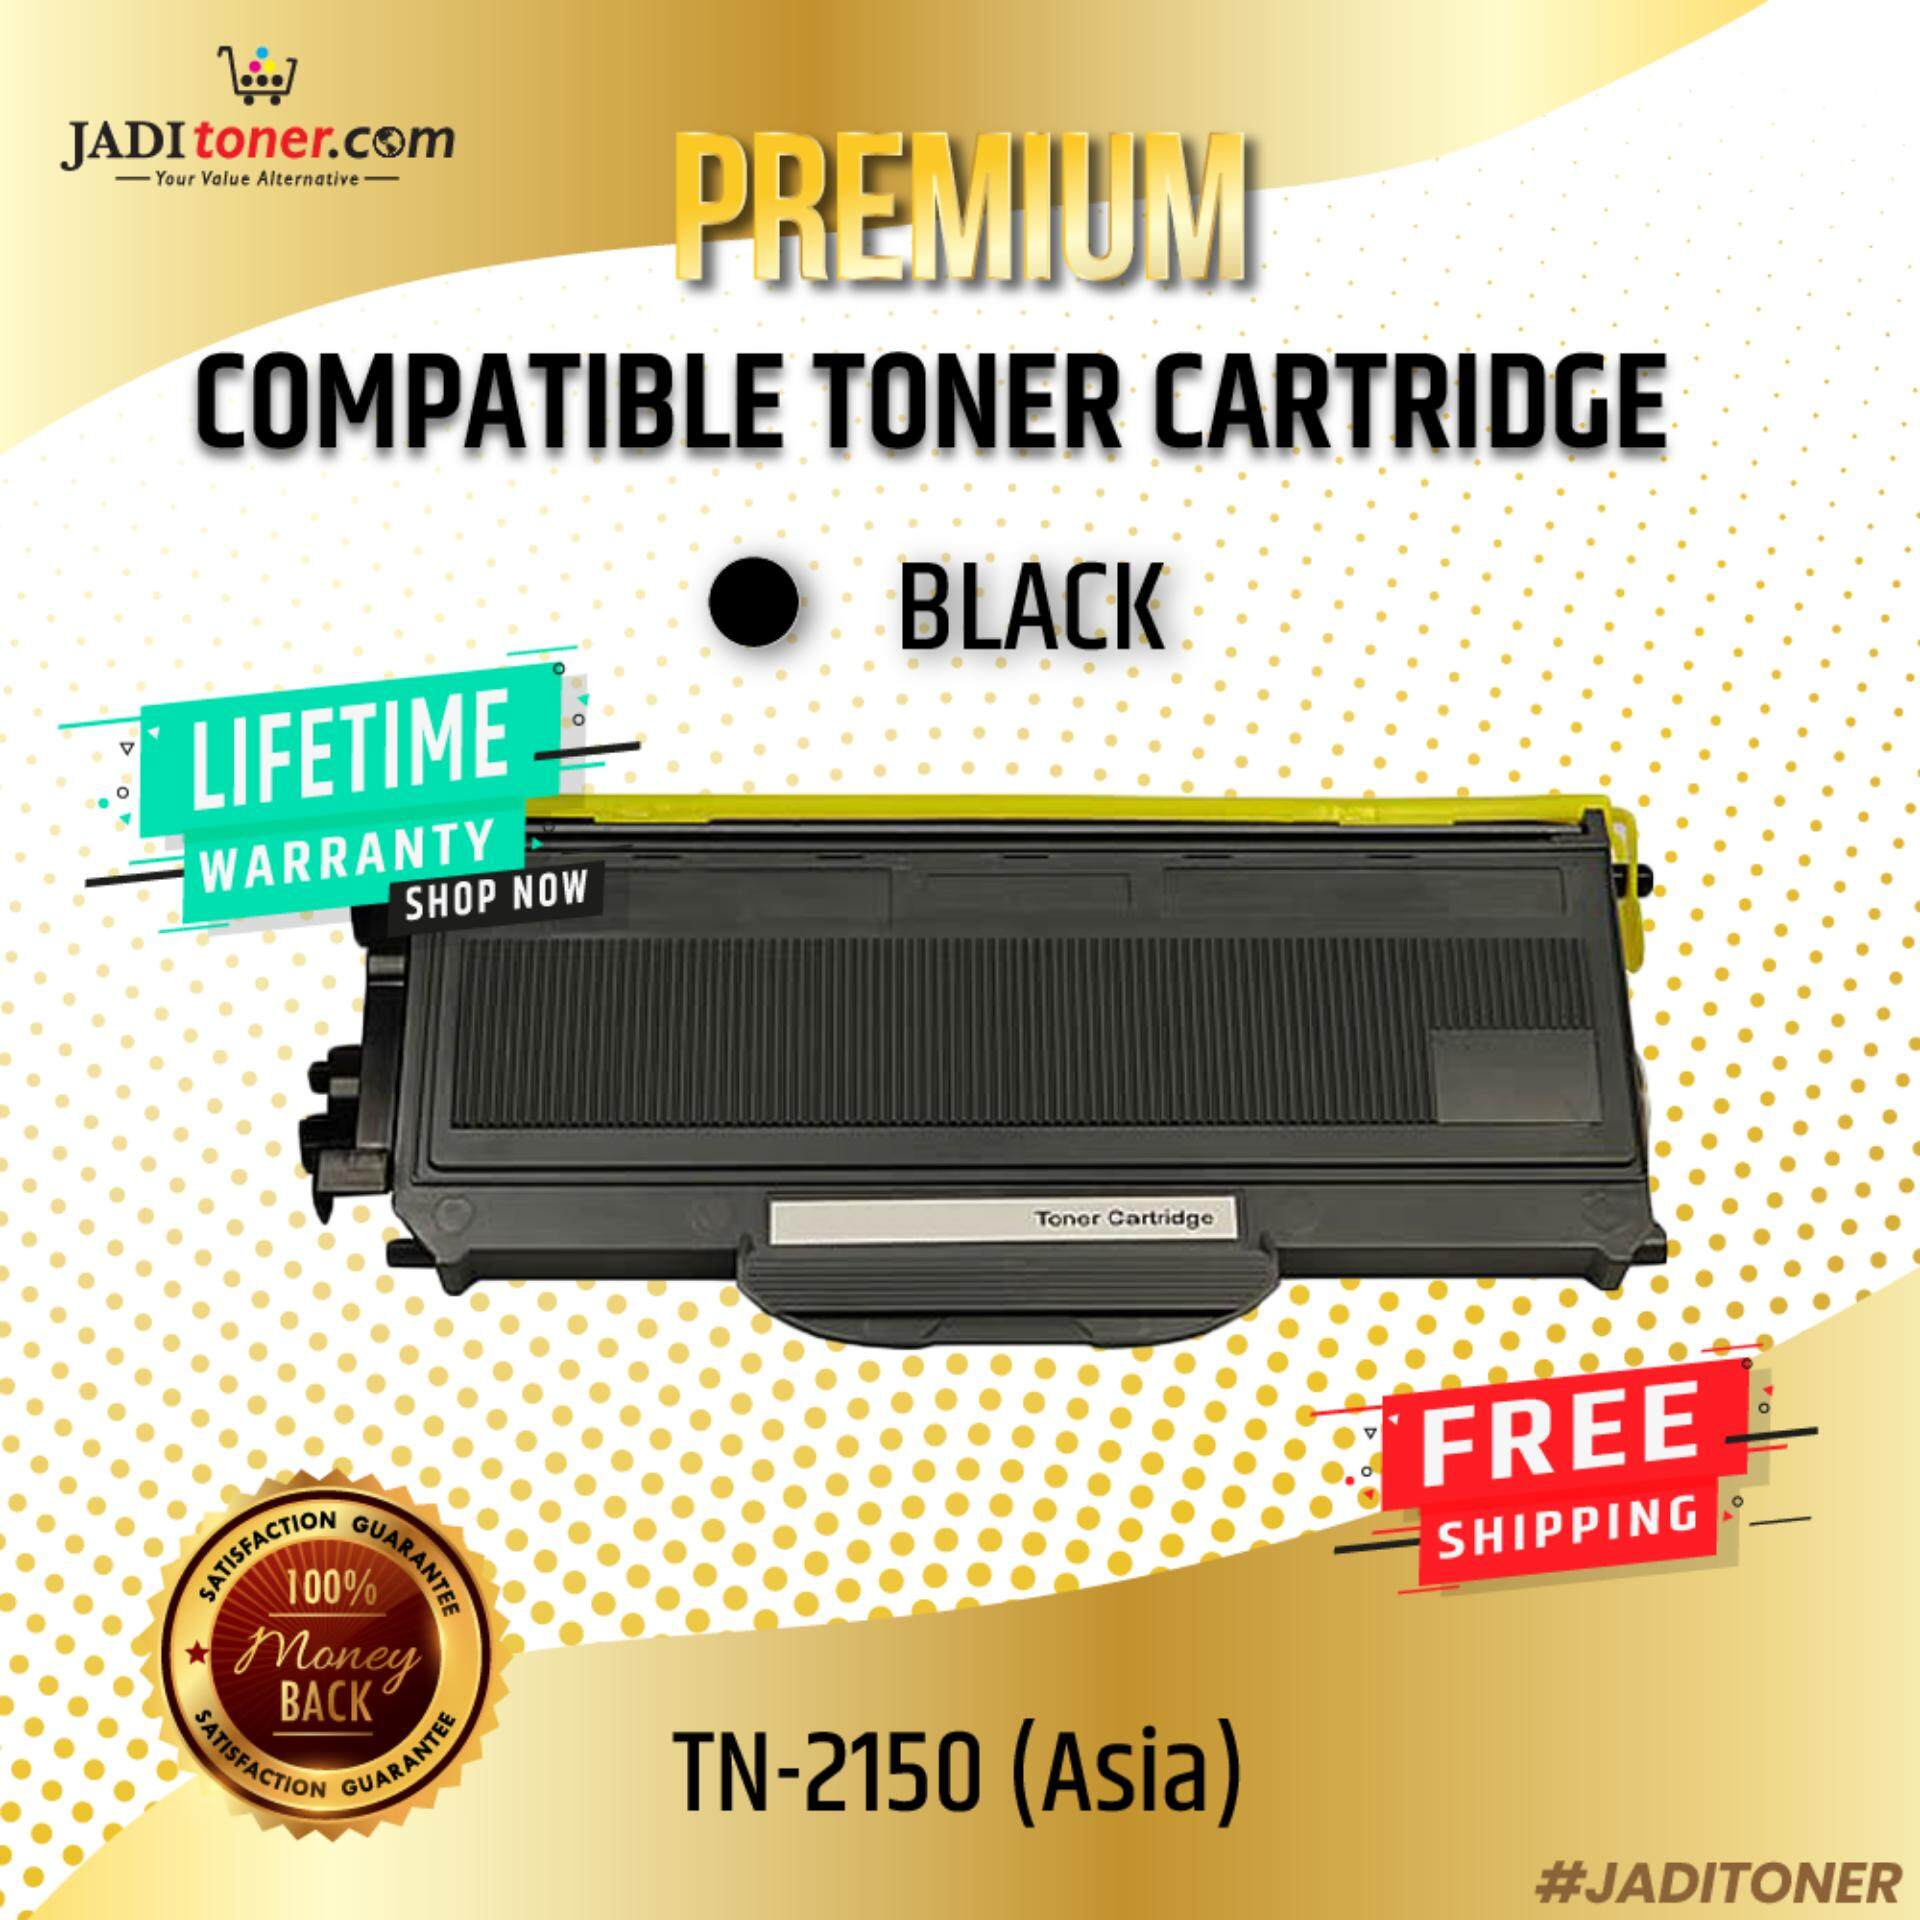 Compatible TN-2150 Laser Toner Cartridge For Brother HL-2140 HL-2170 DCP-7030 DCP-7040 MFC-7045 MFC-7320 MFC-7340 MFC-7450 MFC-7440 MFC-7840W Brother HL2140 HL2170 DCP7030 DCP7040 MFC7045 MFC7320 MFC7340 MFC7450 MFC7440 MFC7840W 2140 Brother TN2150 2150